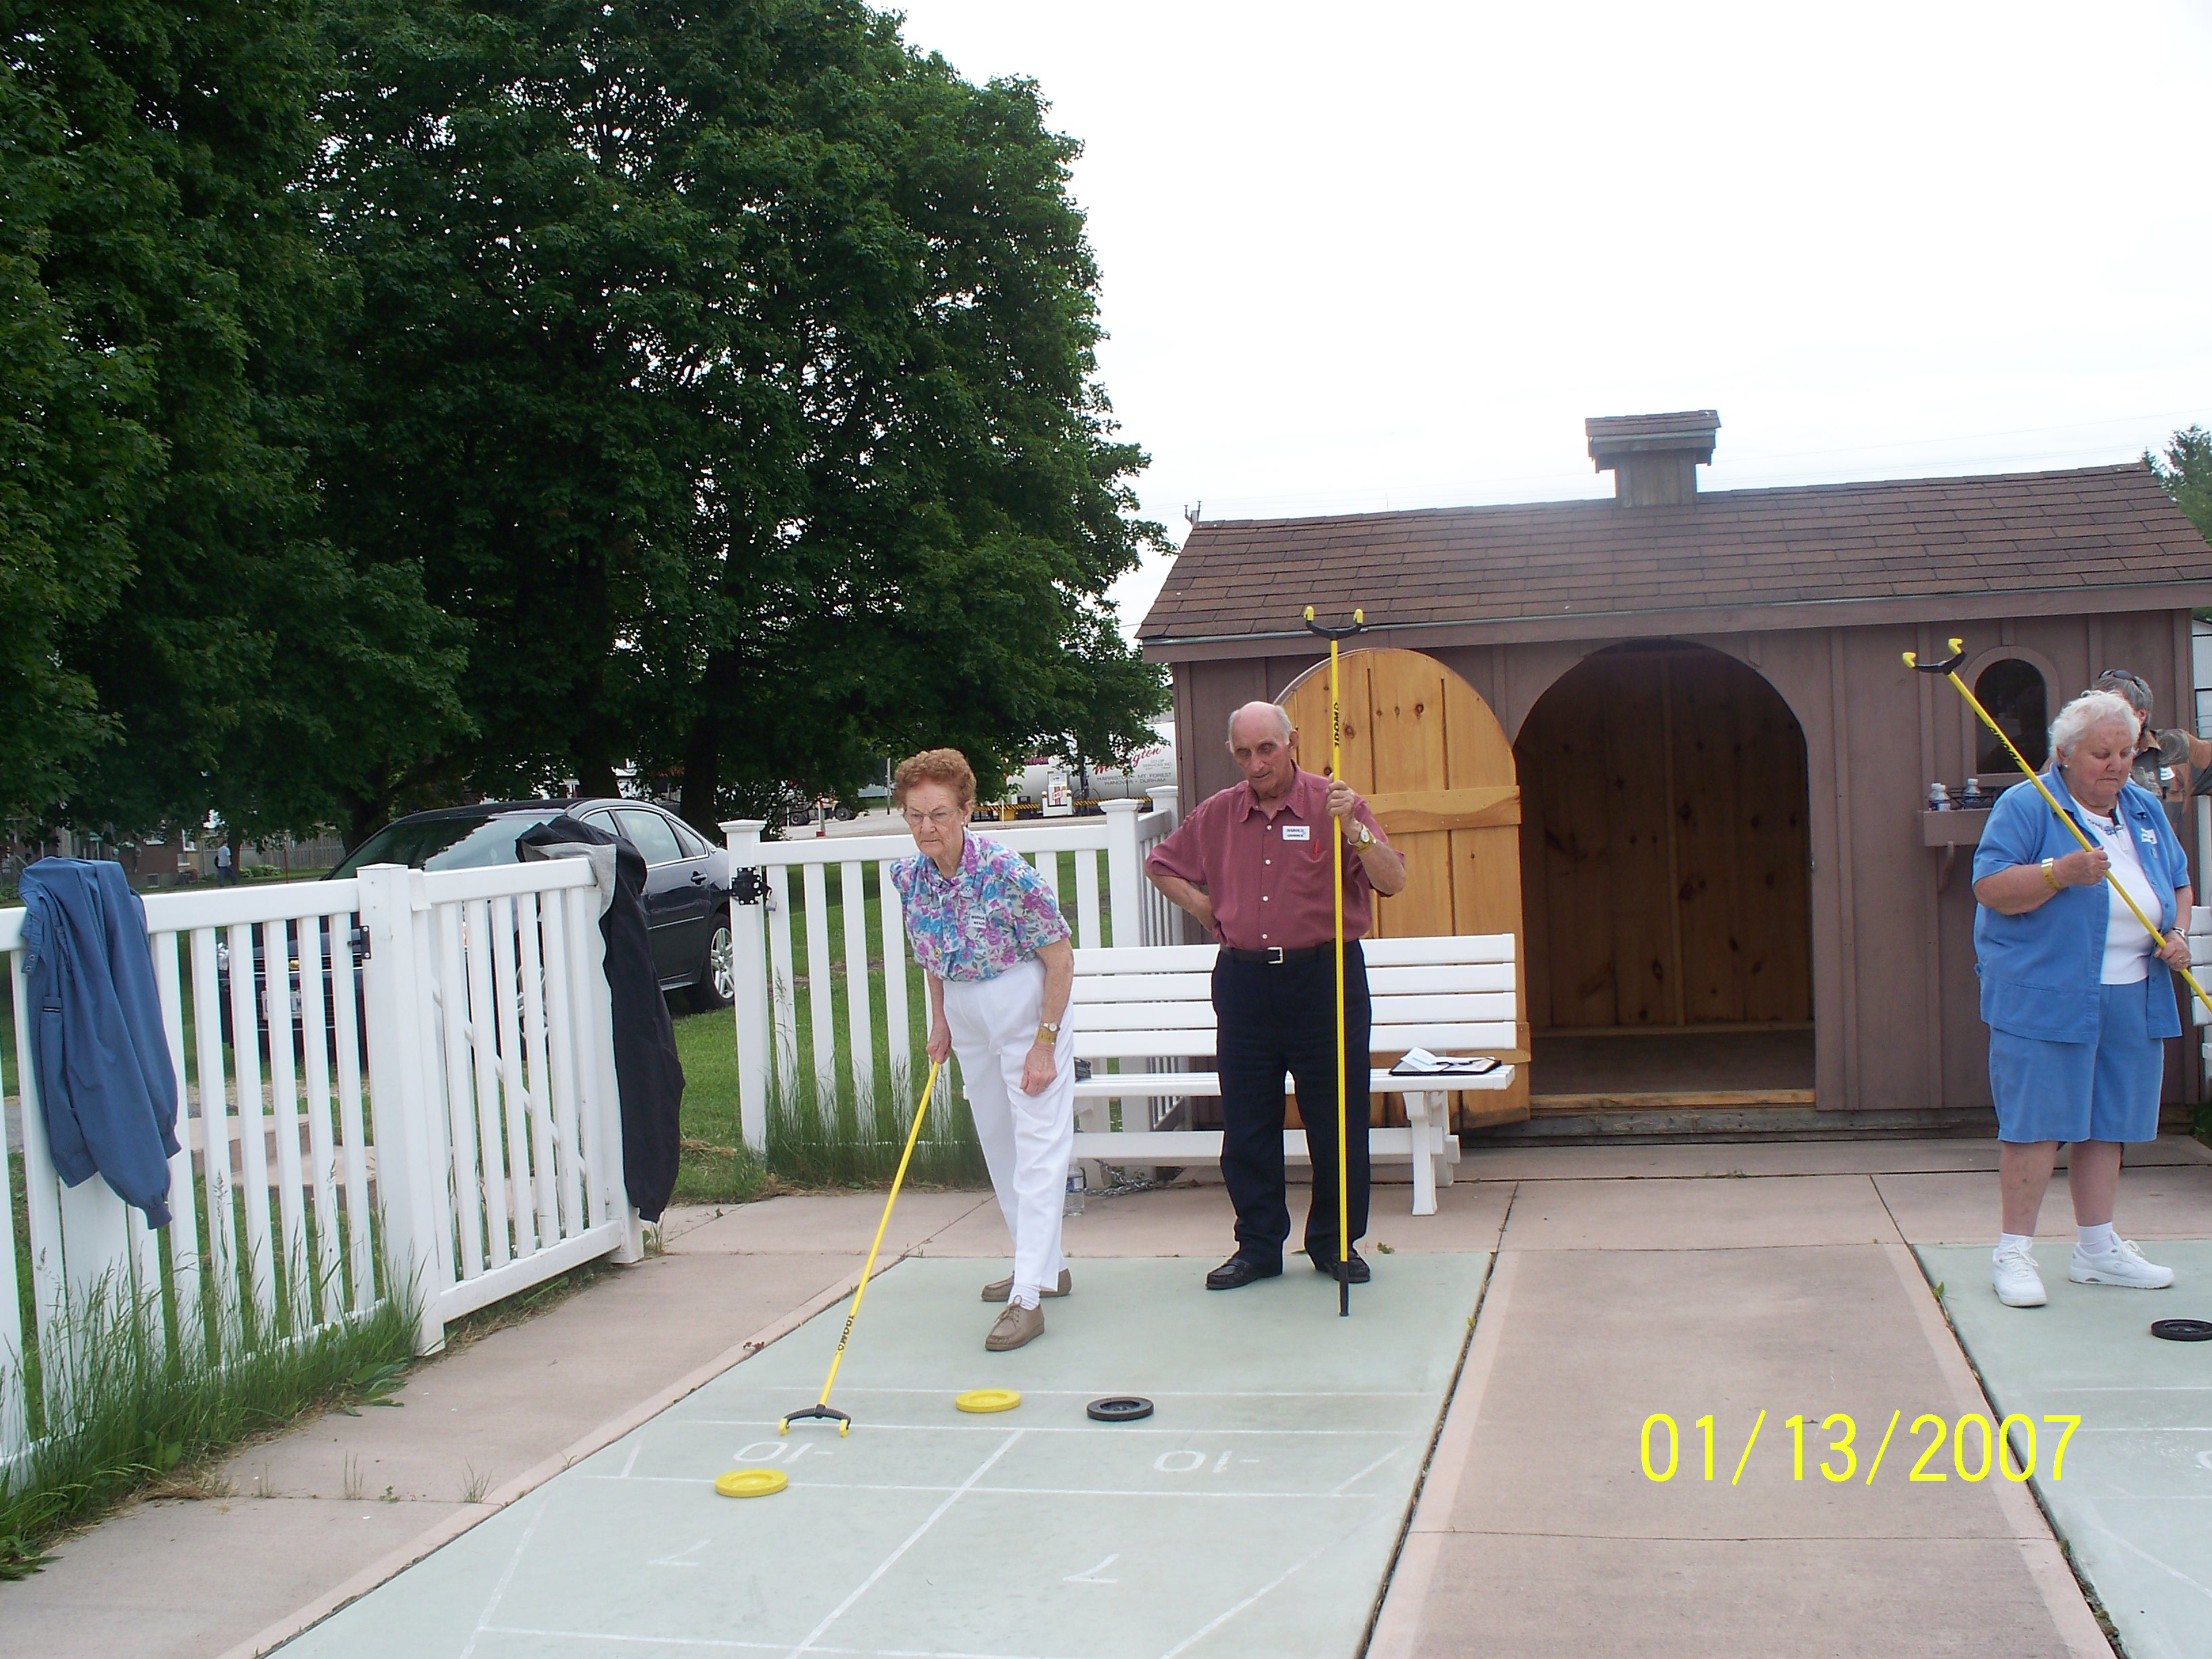 Shuffleboard was among the more popular events at the Seniors Olympics in Minto this summer.